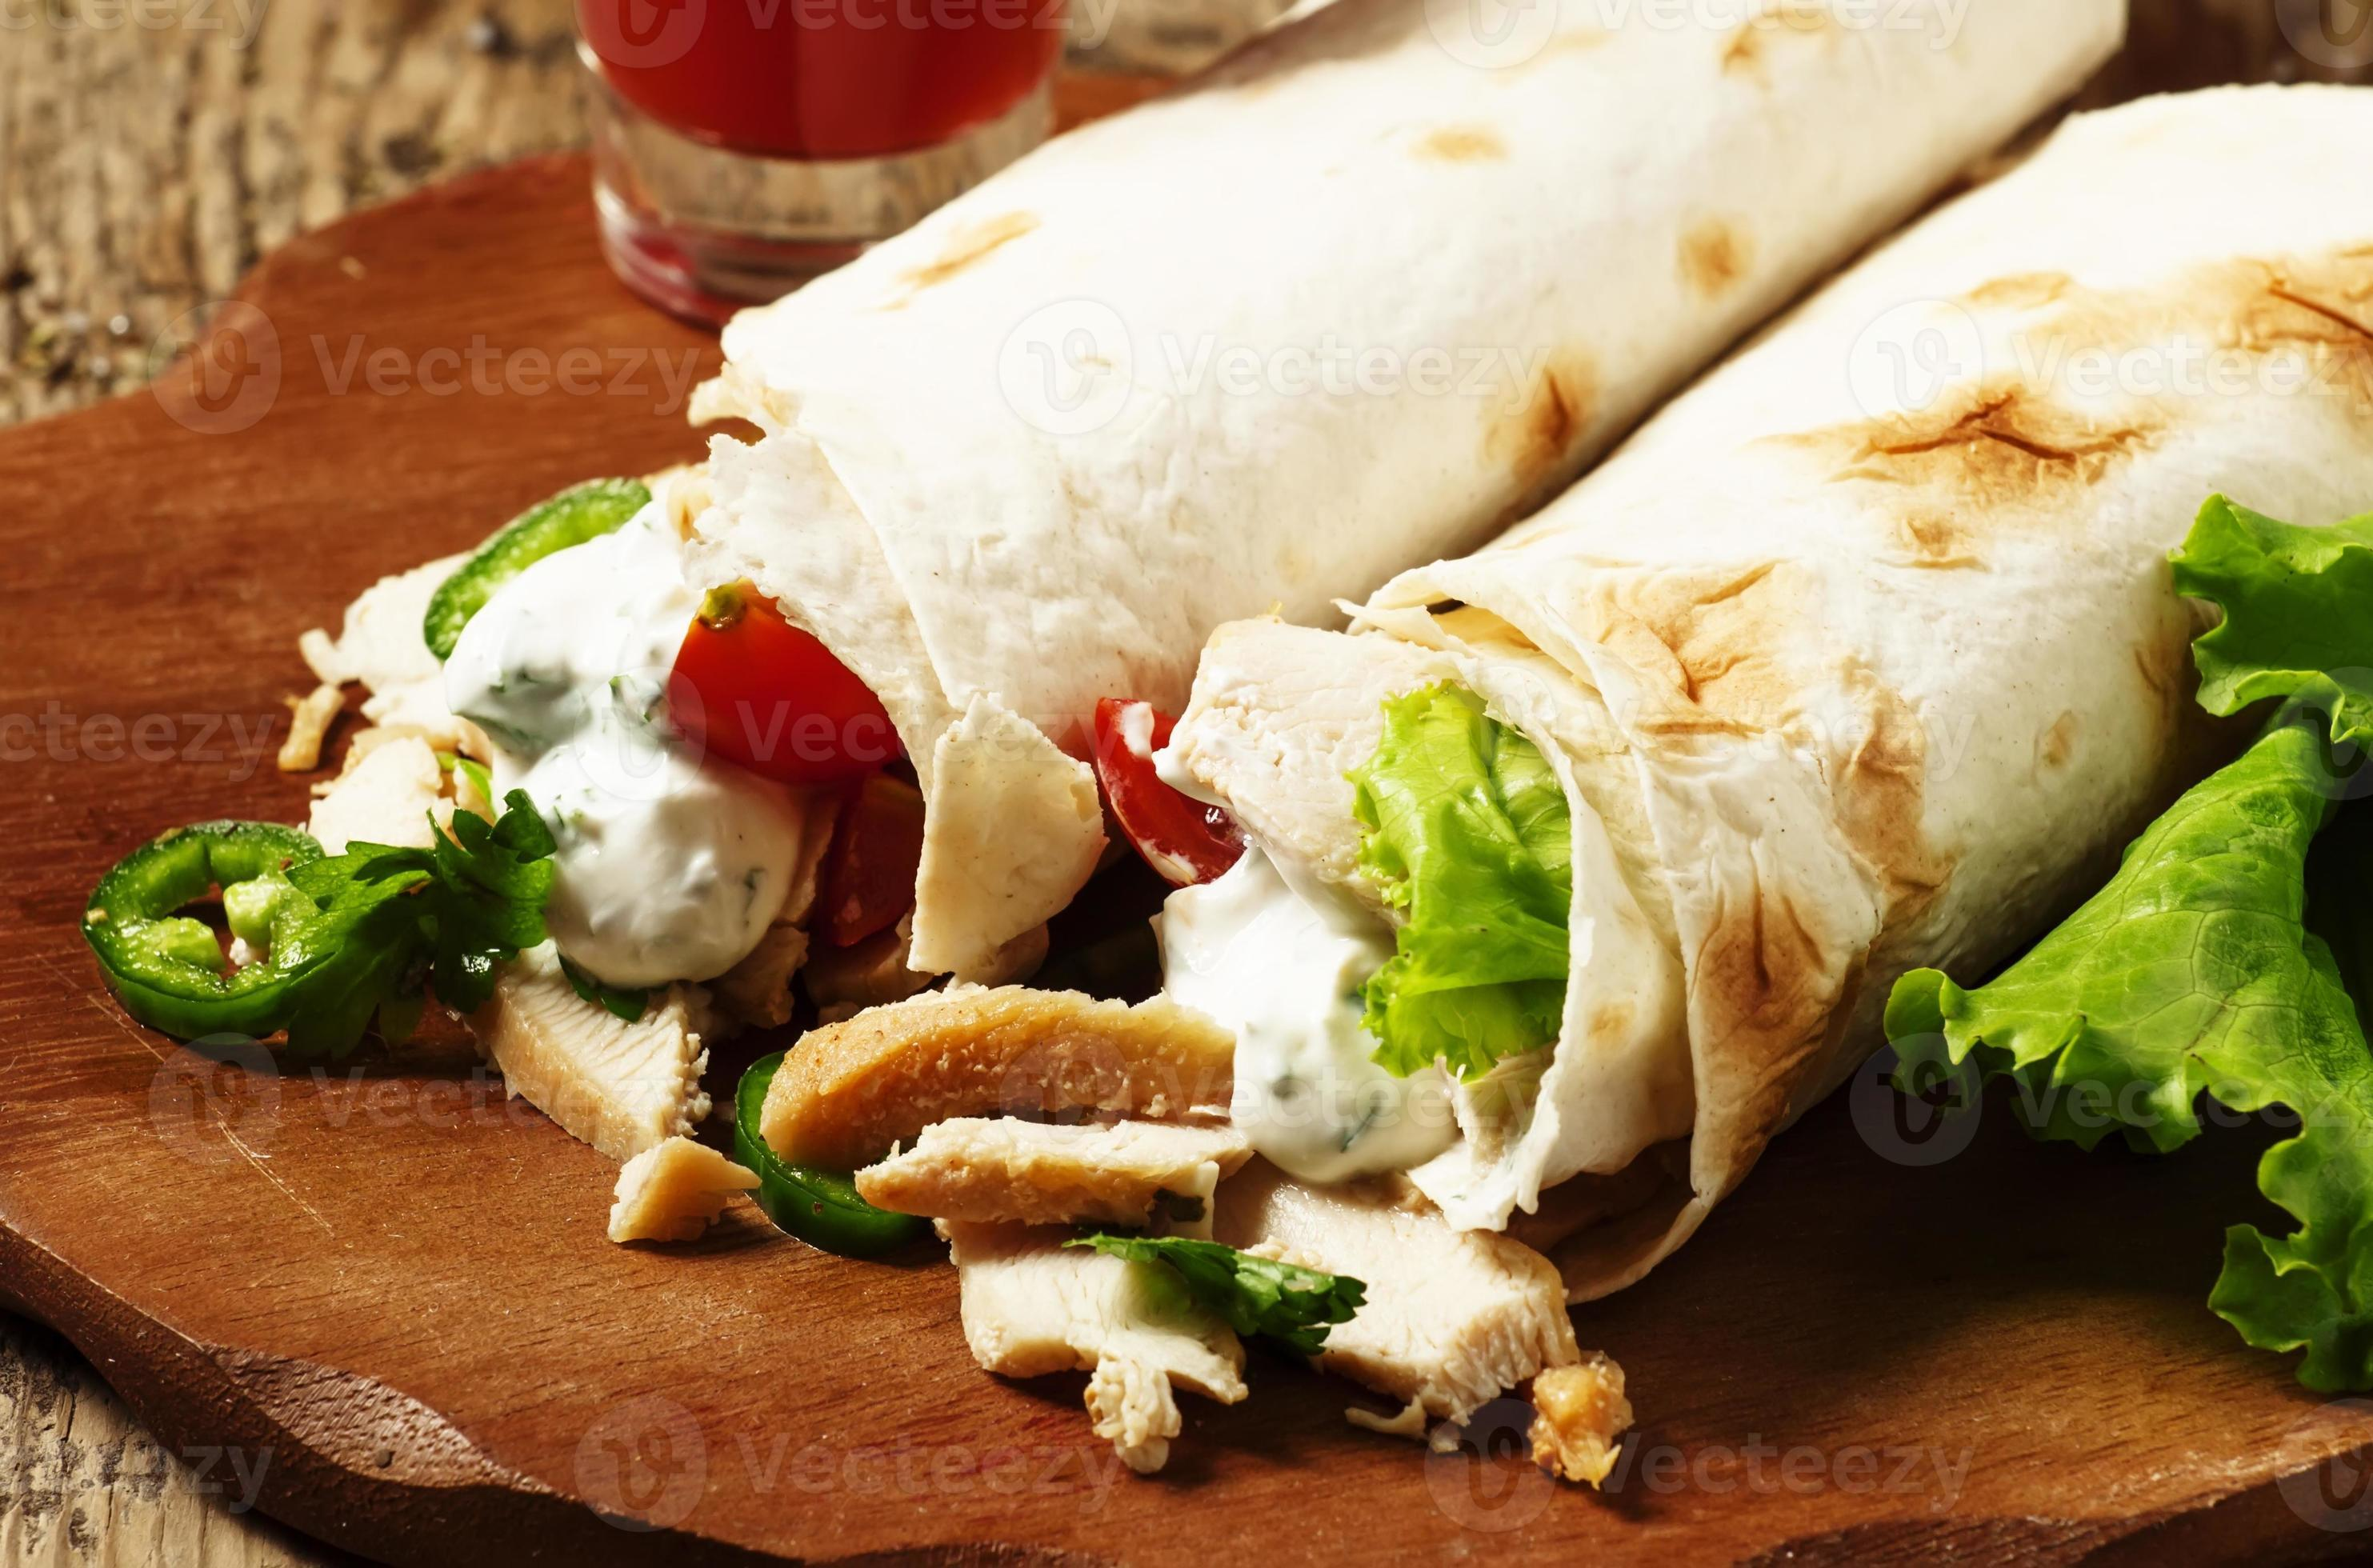 Turkish Doner Kebab Shawarma Roll With Meat And Pita Bread Stock Photo